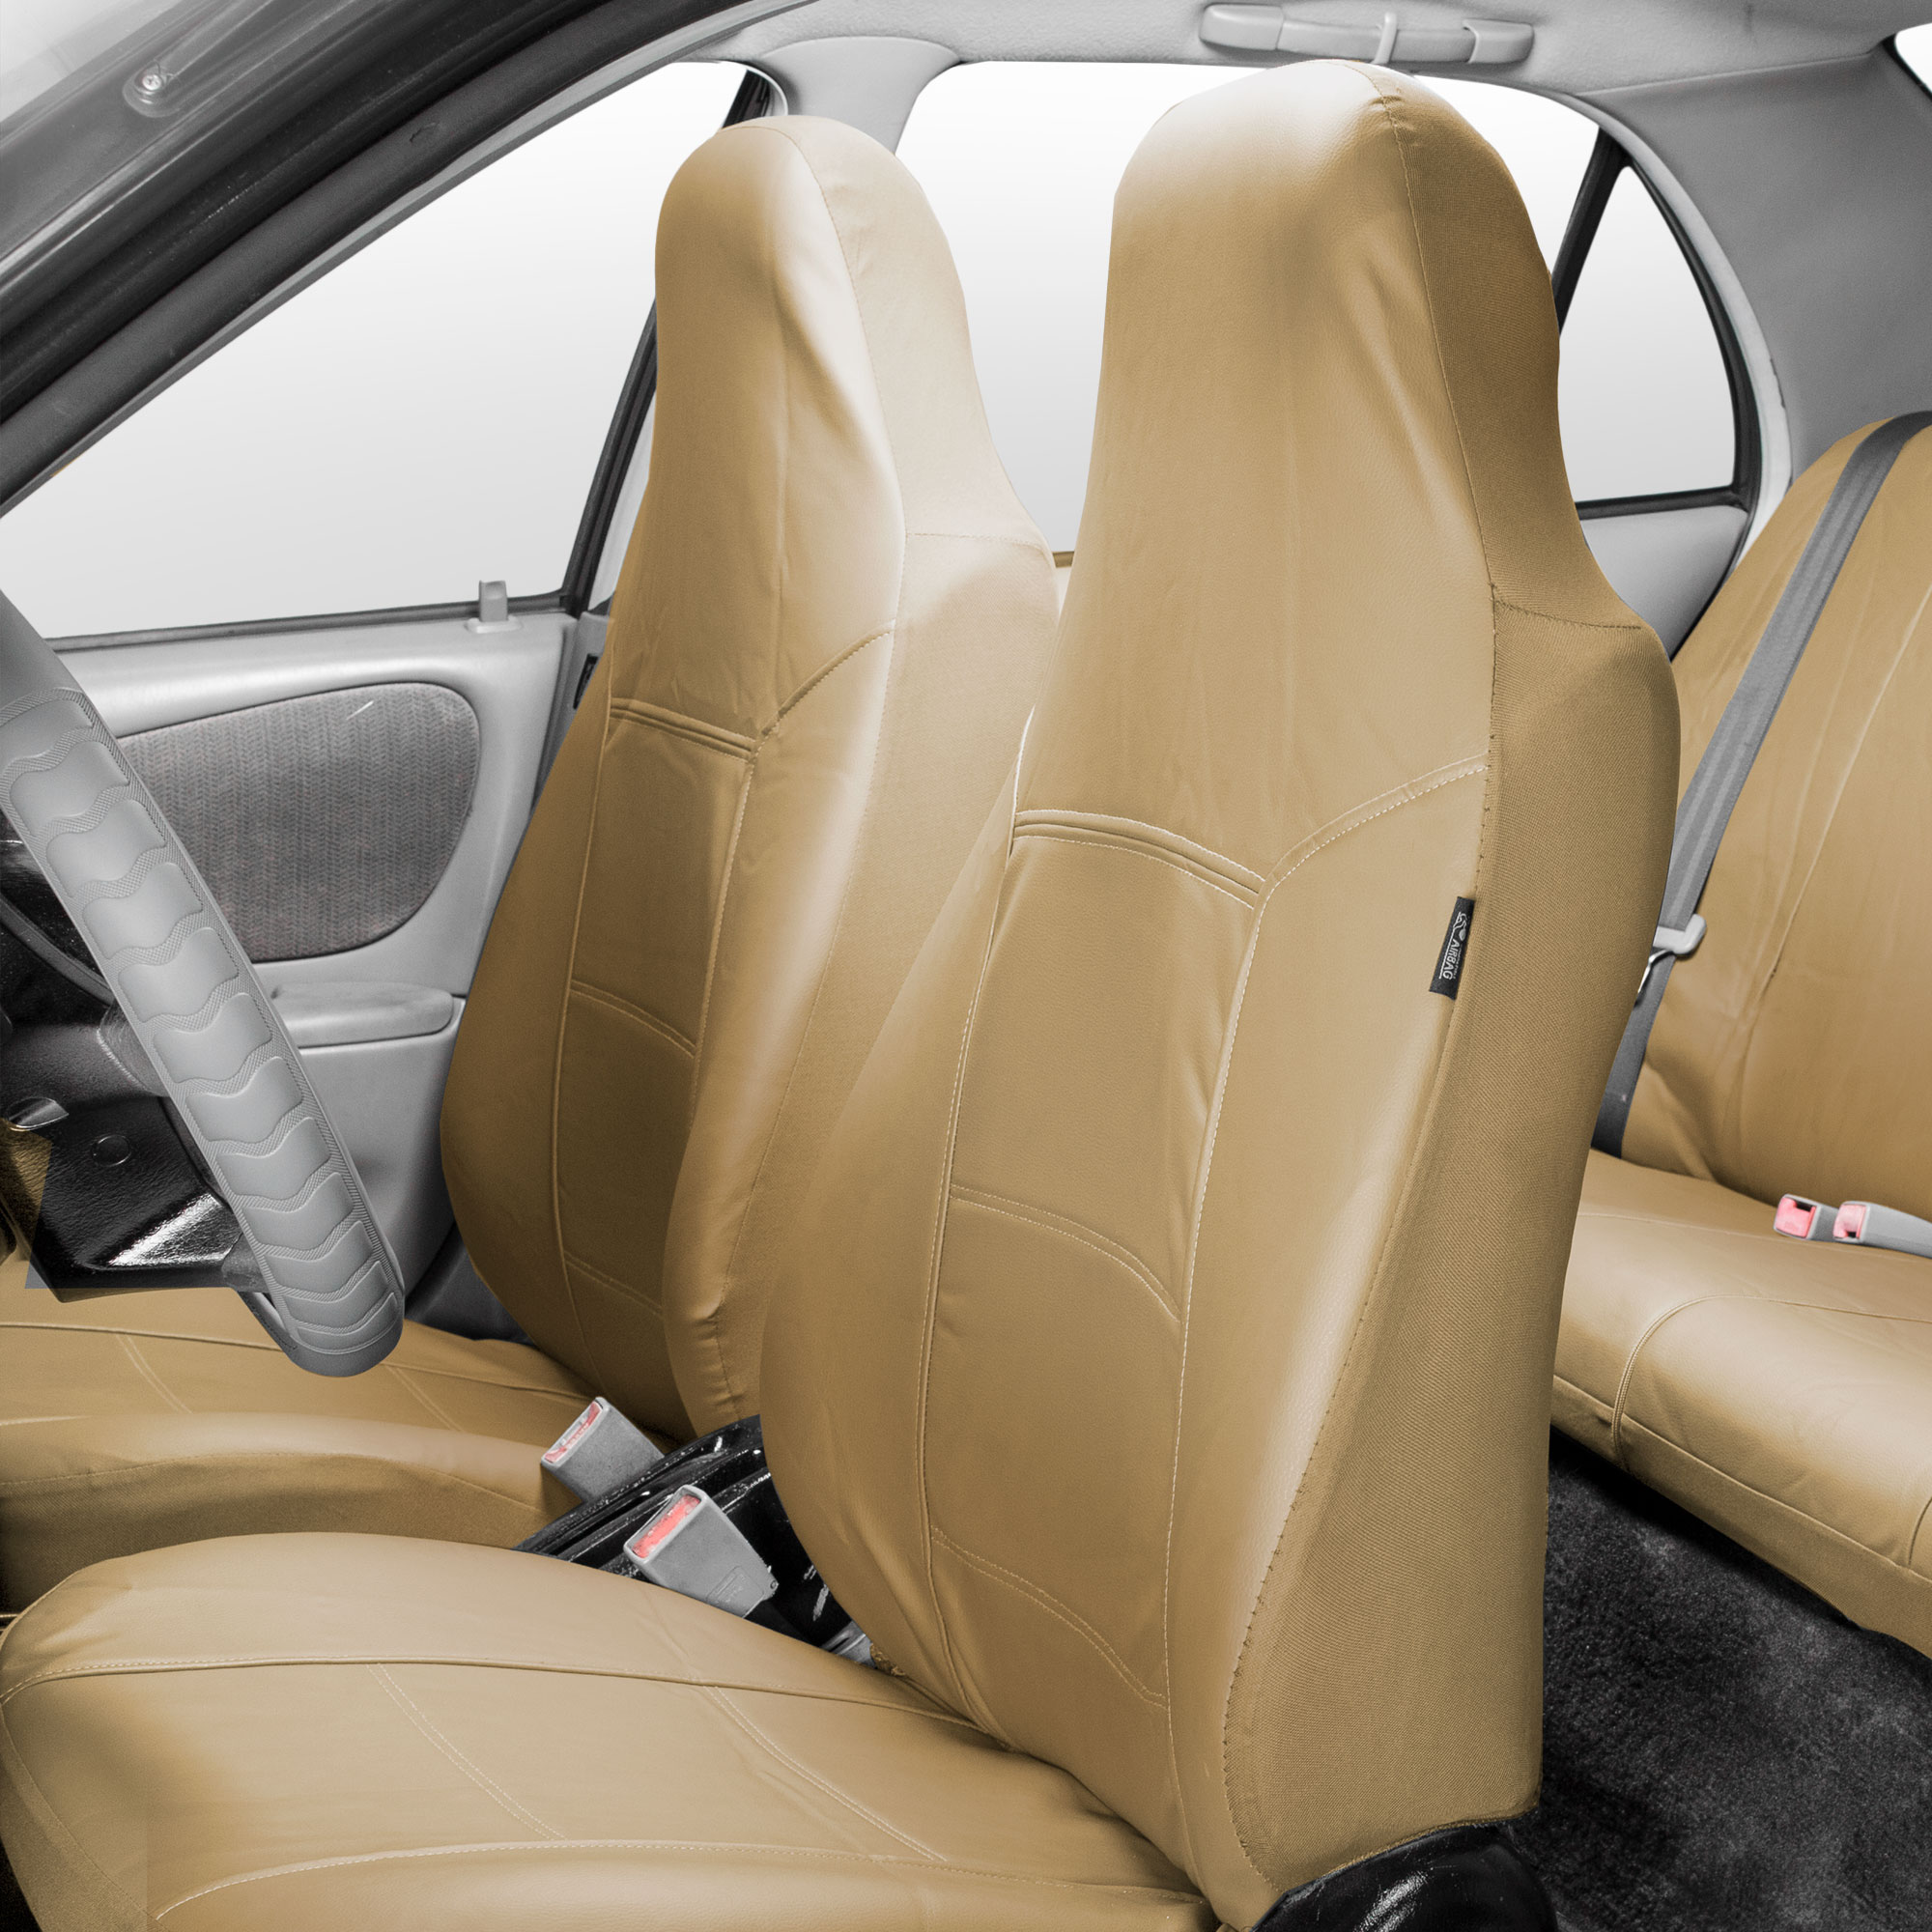 FH Group Highback Seat Royal Leather Seat Covers for Sedan, SUV, Van, Truck, Two Highback Buckets, Beige